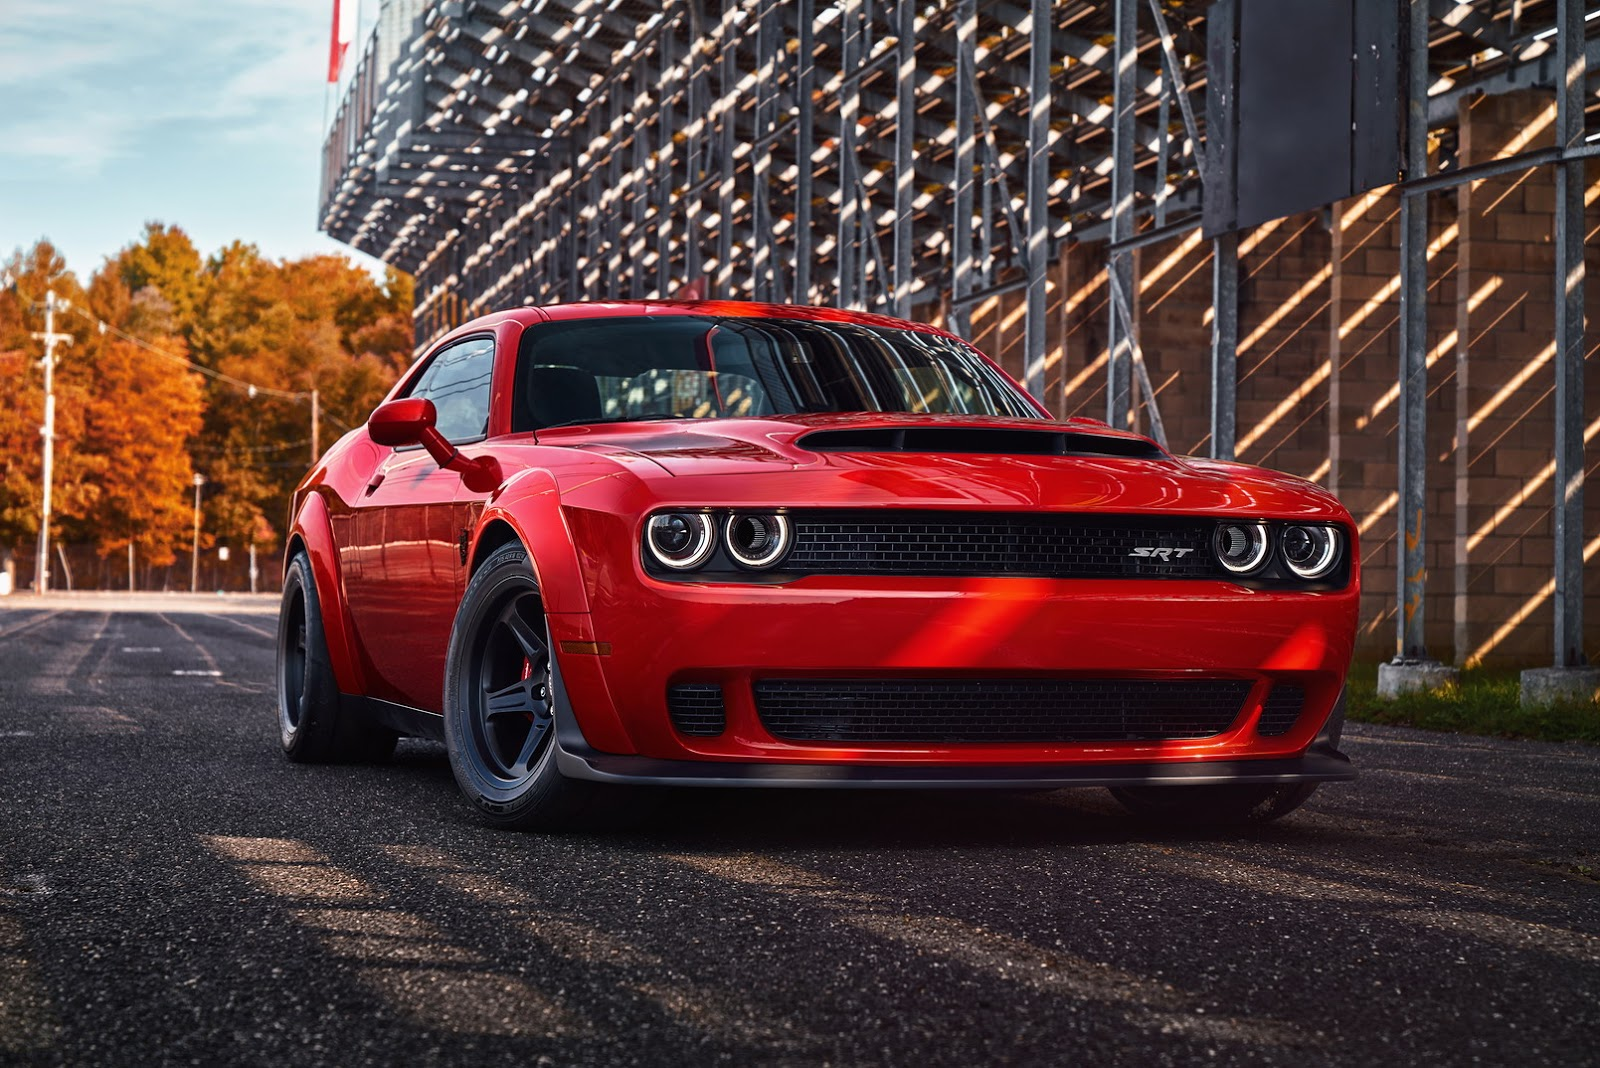 With Rollout The 2018 Dodge Demon Can Hit 60 MPH In 2 1s